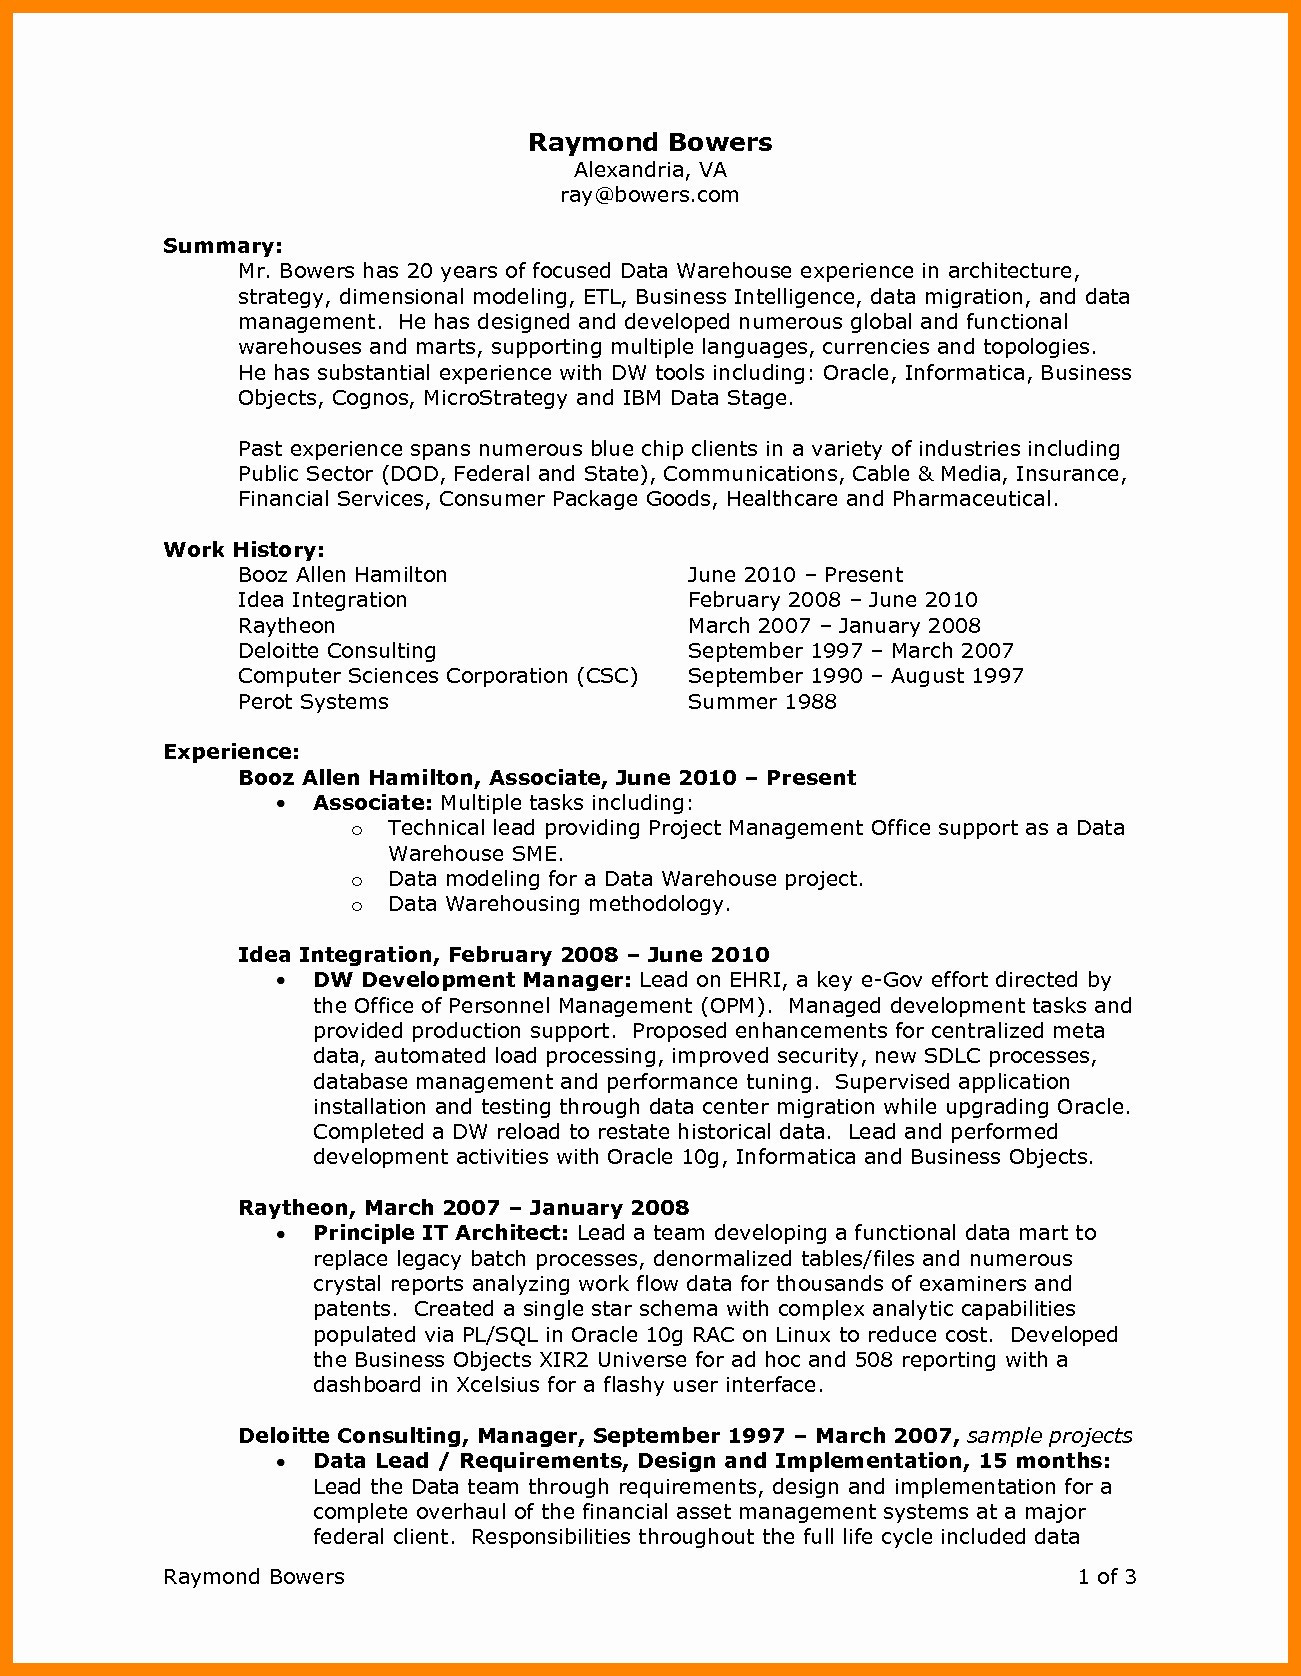 20 Years Experience Resume - Resume for Internal Promotion Template Free Downloads Beautiful